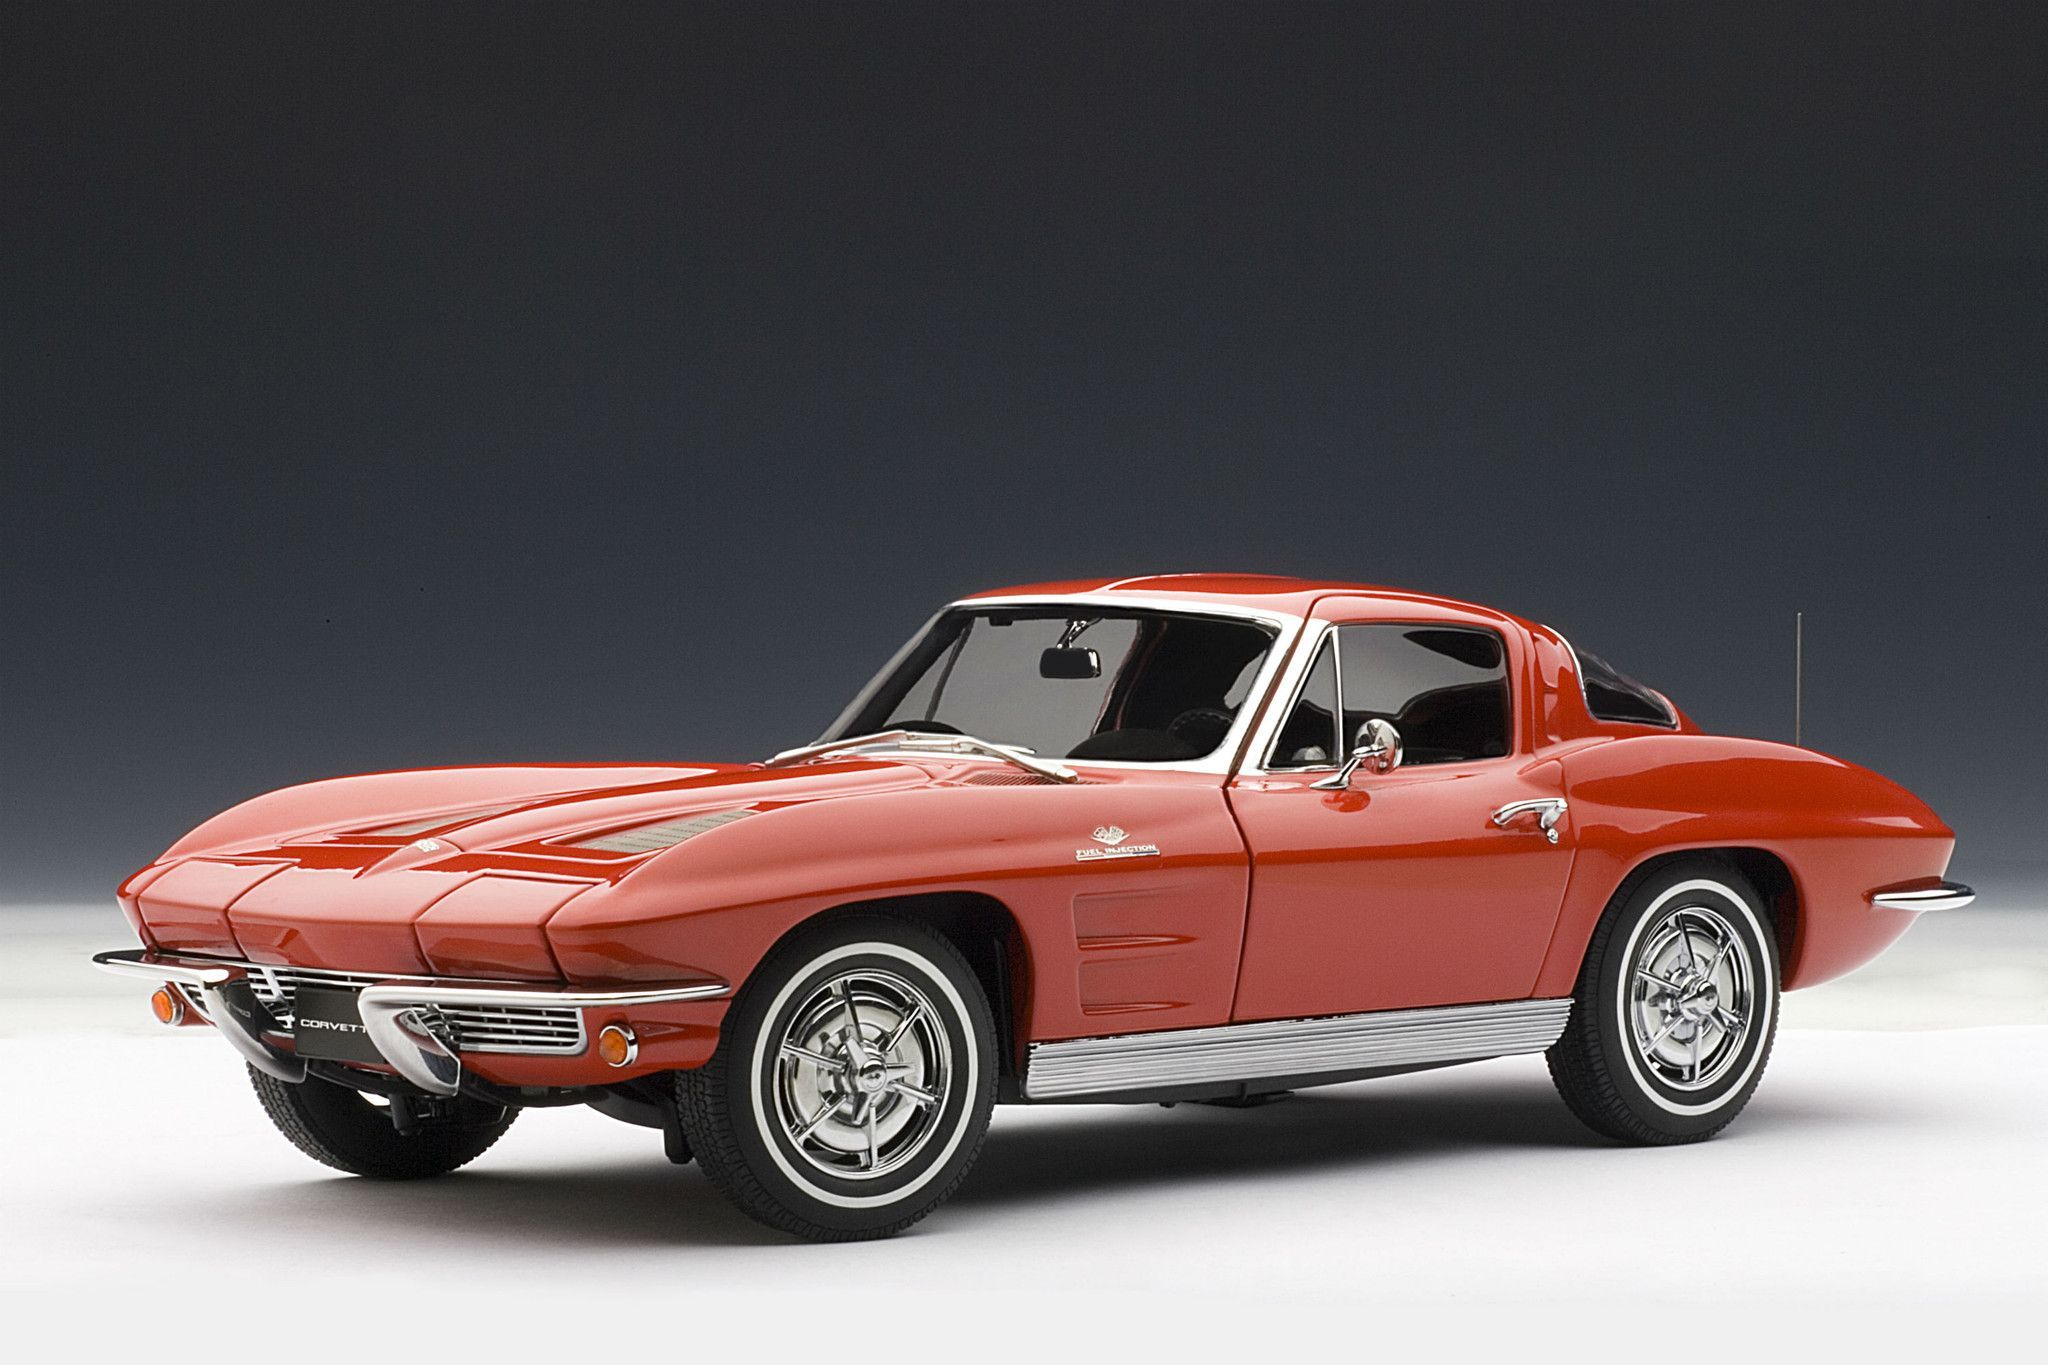 1963 chevrolet corvette sting ray coupe 1 18 scale diecast model car